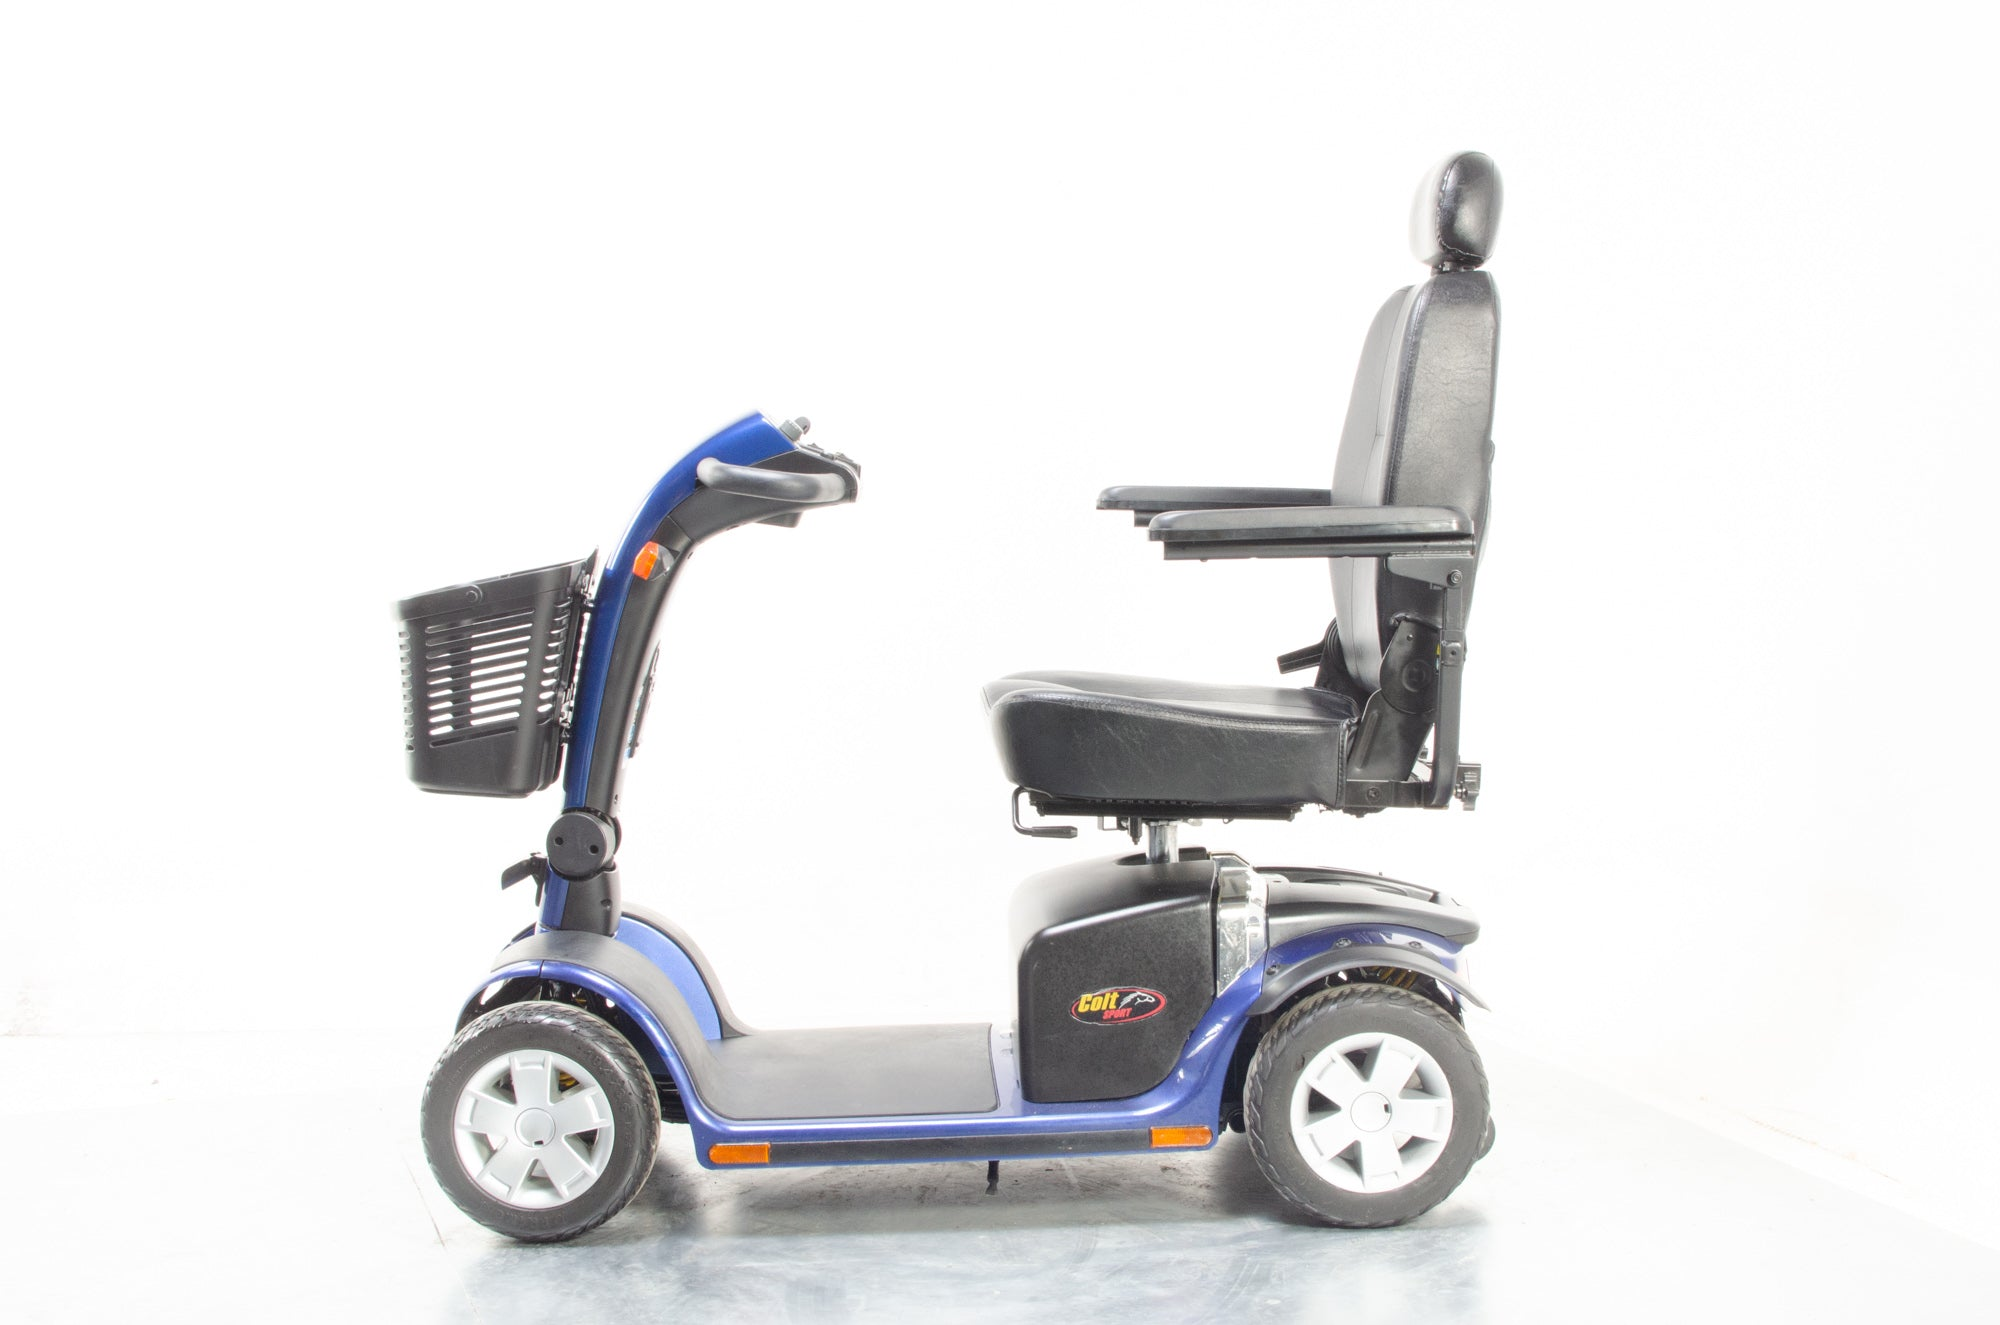 Pride Colt Sport Used Electric Mobility Scooter 8mph Transportable Road Pavement Suspension Solid Tyres